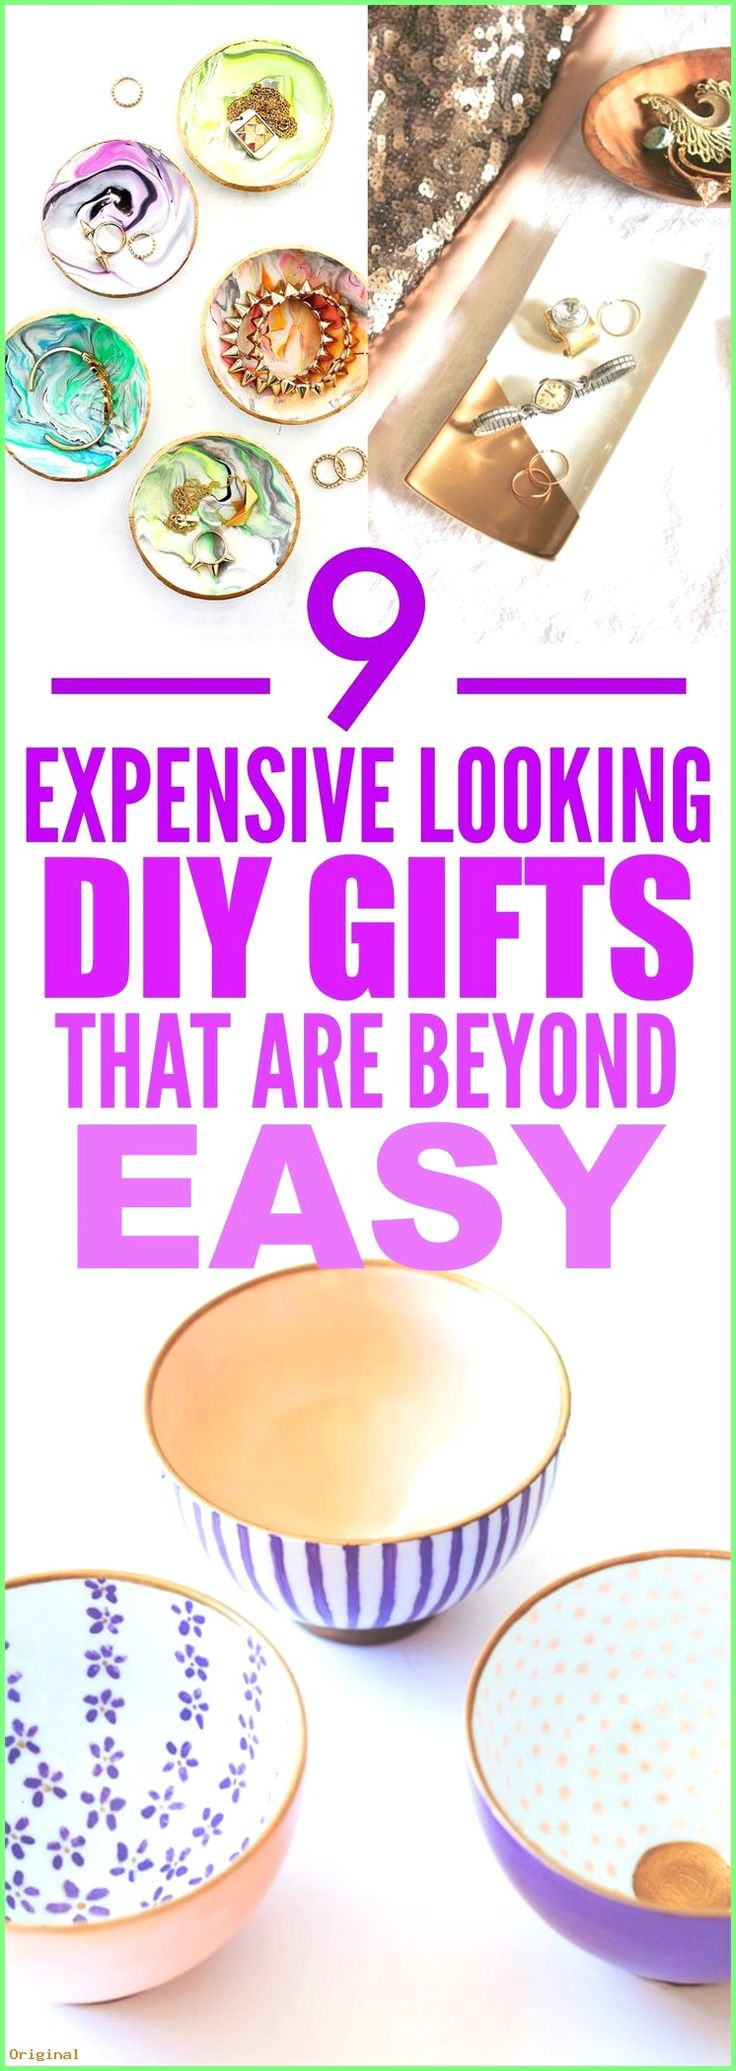 50+ Diy Crafts – These 9 Expensive Looking DIY gifts are THE BEST! I'm so glad I found th…